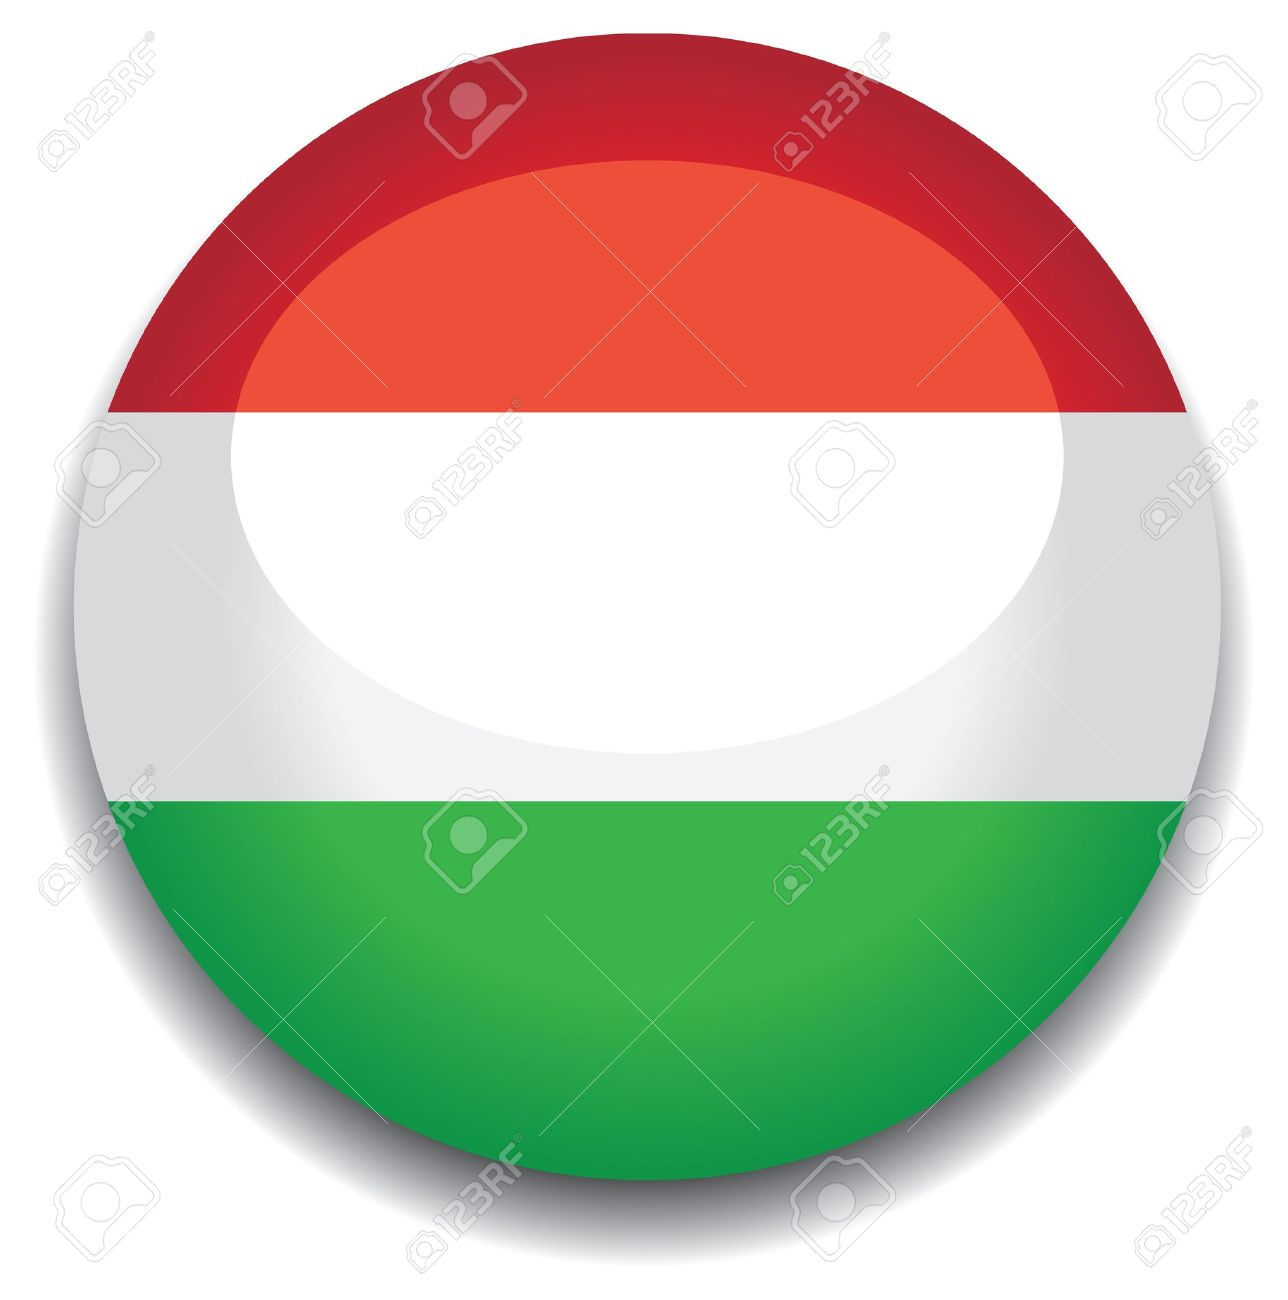 Hungary clipart #7, Download drawings